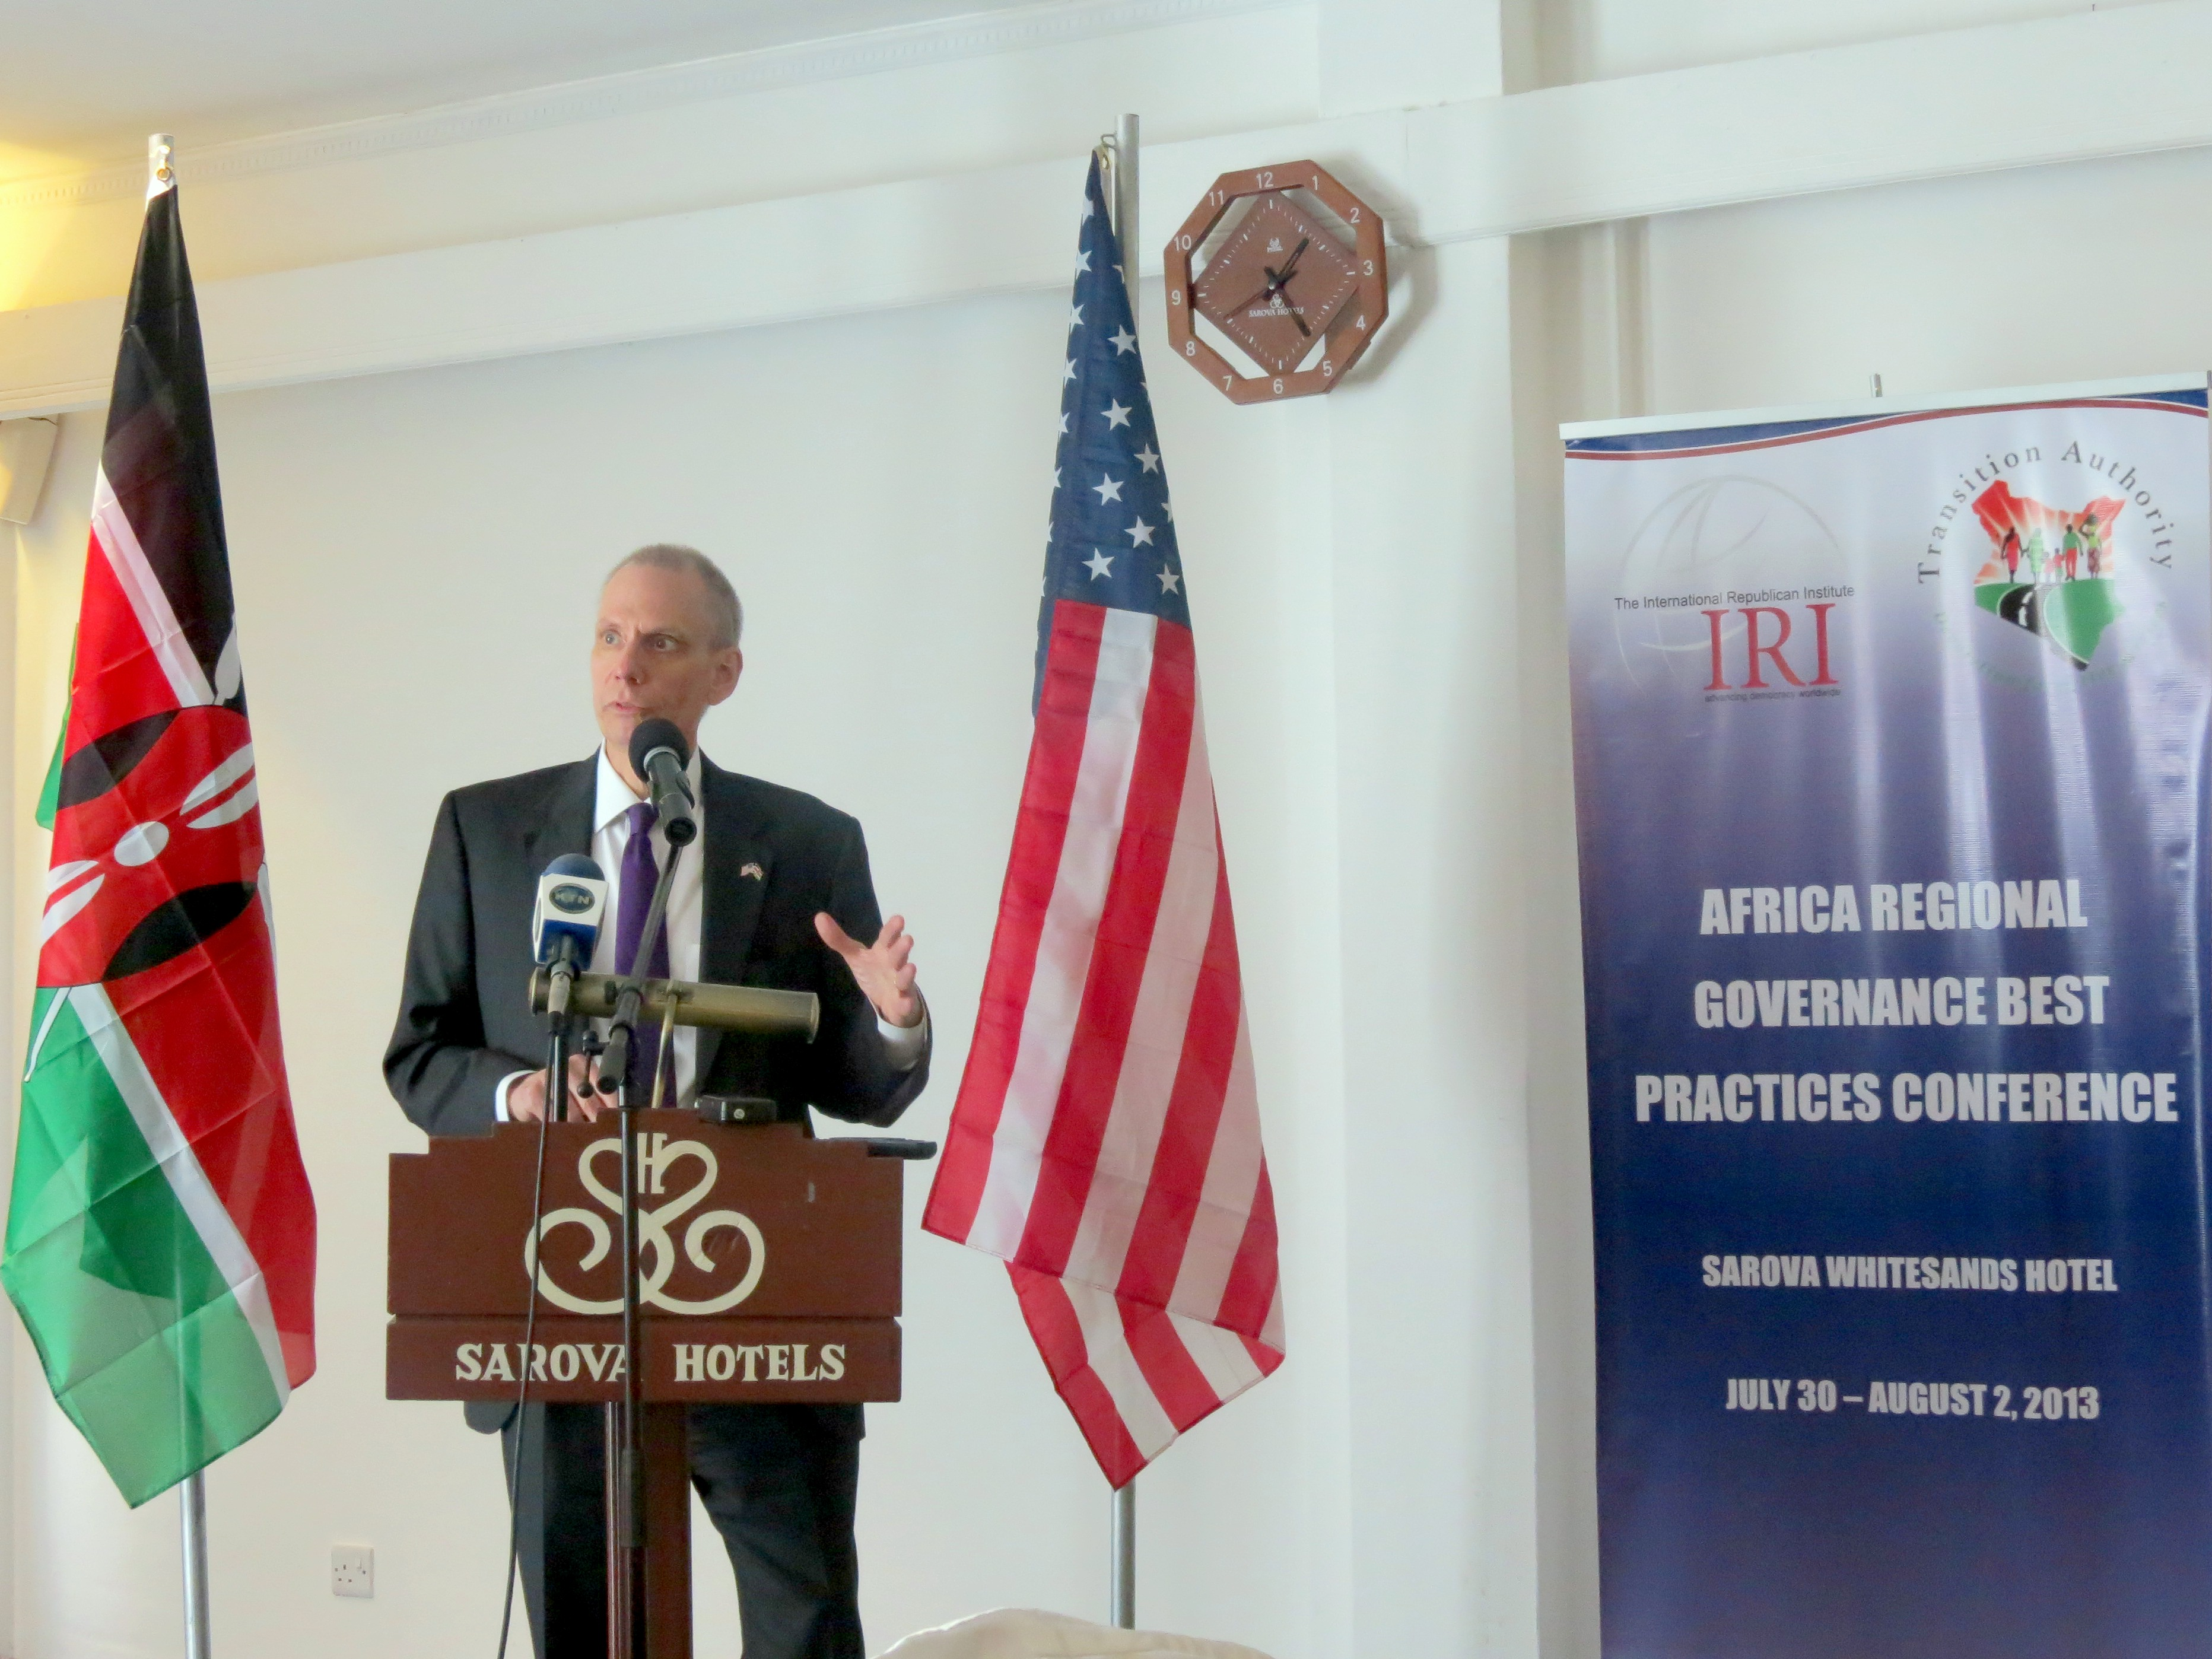 US Ambassador to Kenya speaks behind a podium flanked by Kenyan and American flags